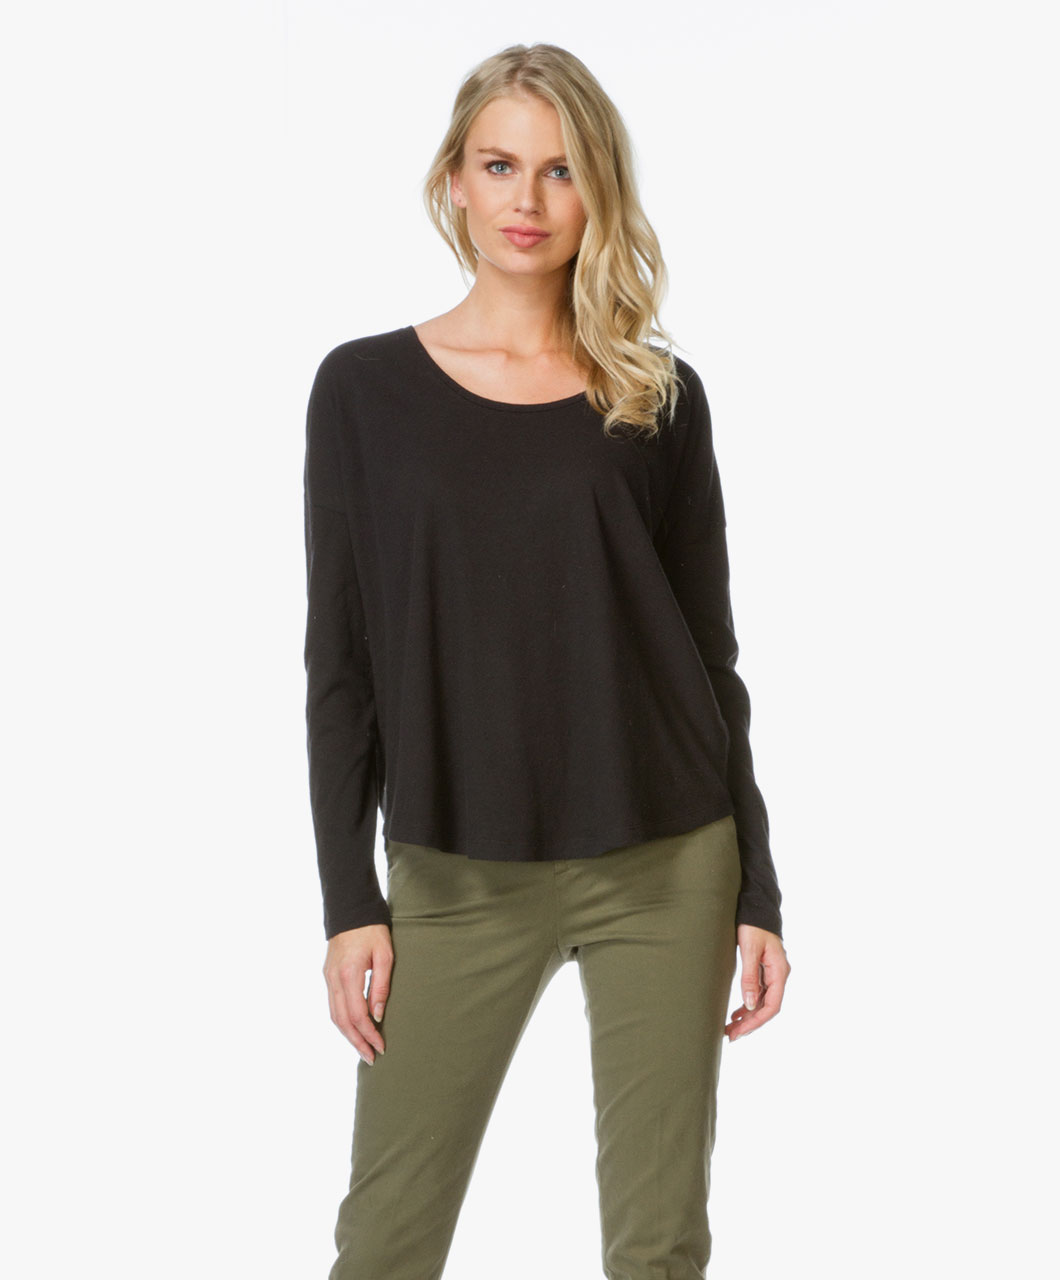 Closed Cotton and Linen Long Sleeve T-shirt - Black - c95640 426 01 ...